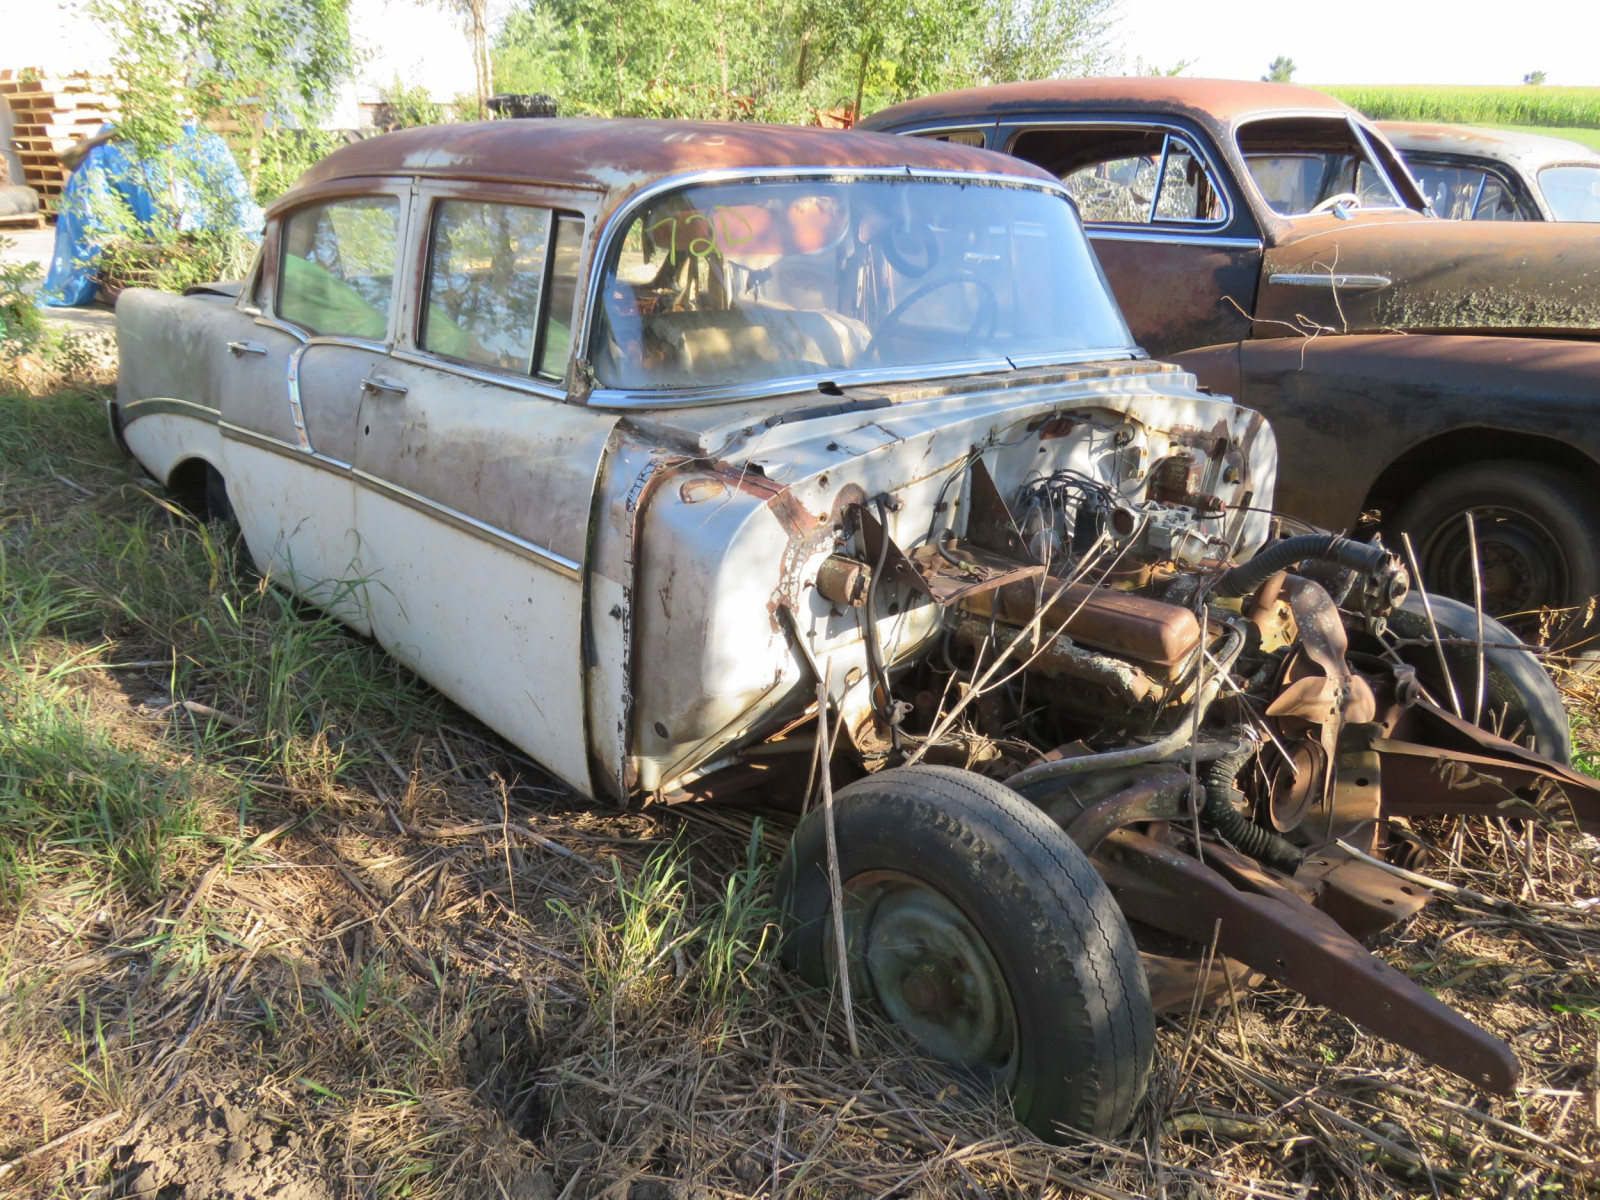 1956 Chevrolet 4dr Sedan for Project or Parts - Image 1